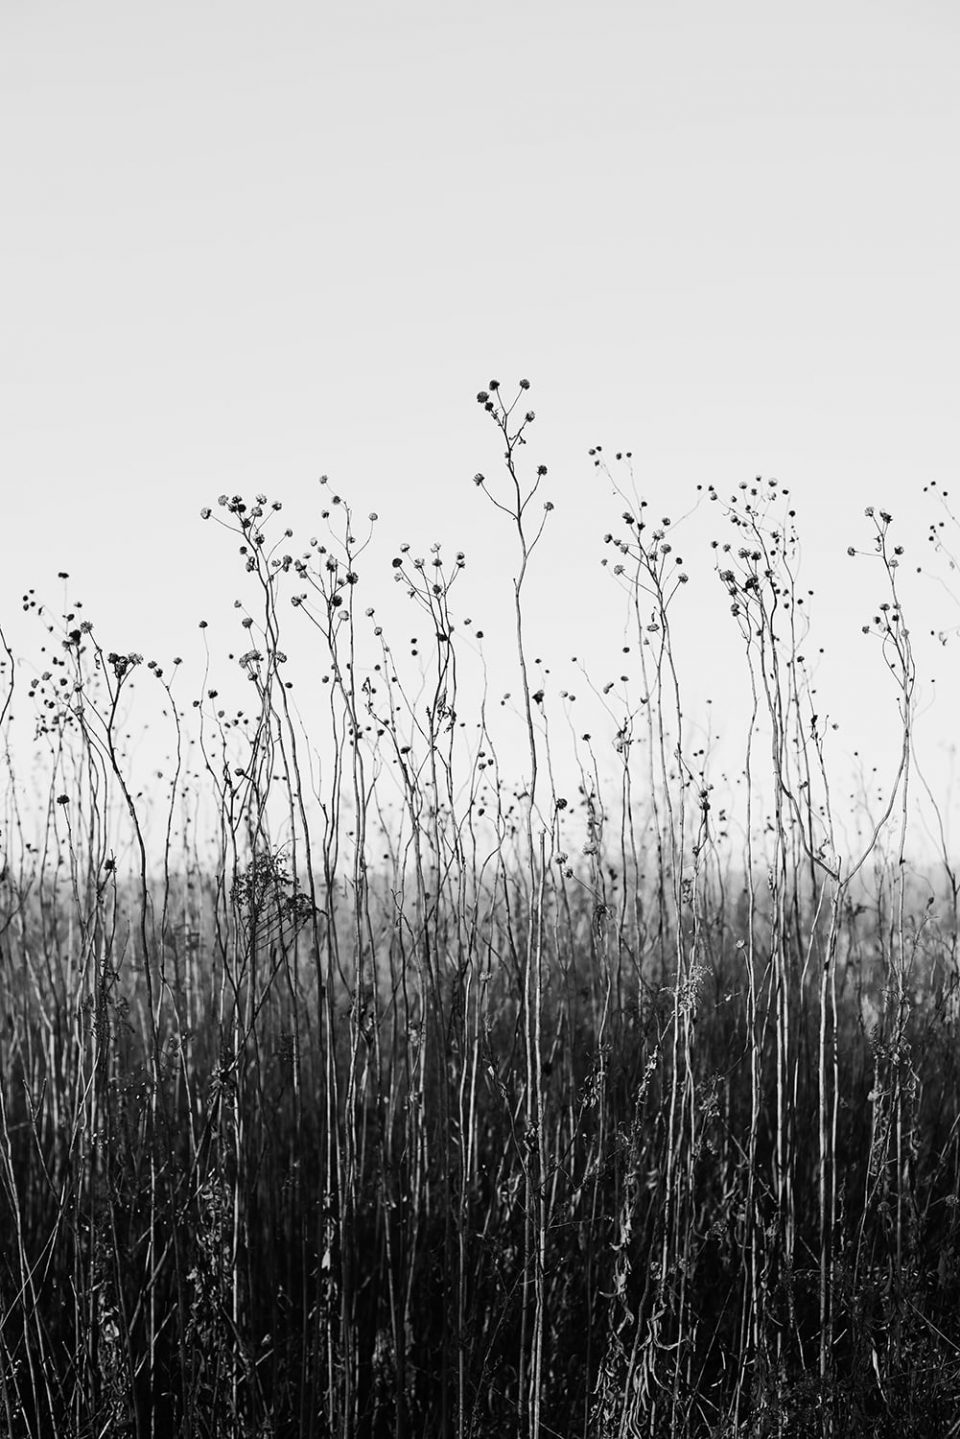 Stems and Prairie Sky: Black and White Landscape Photograph by Keith Dotson. Buy a fine art print here.